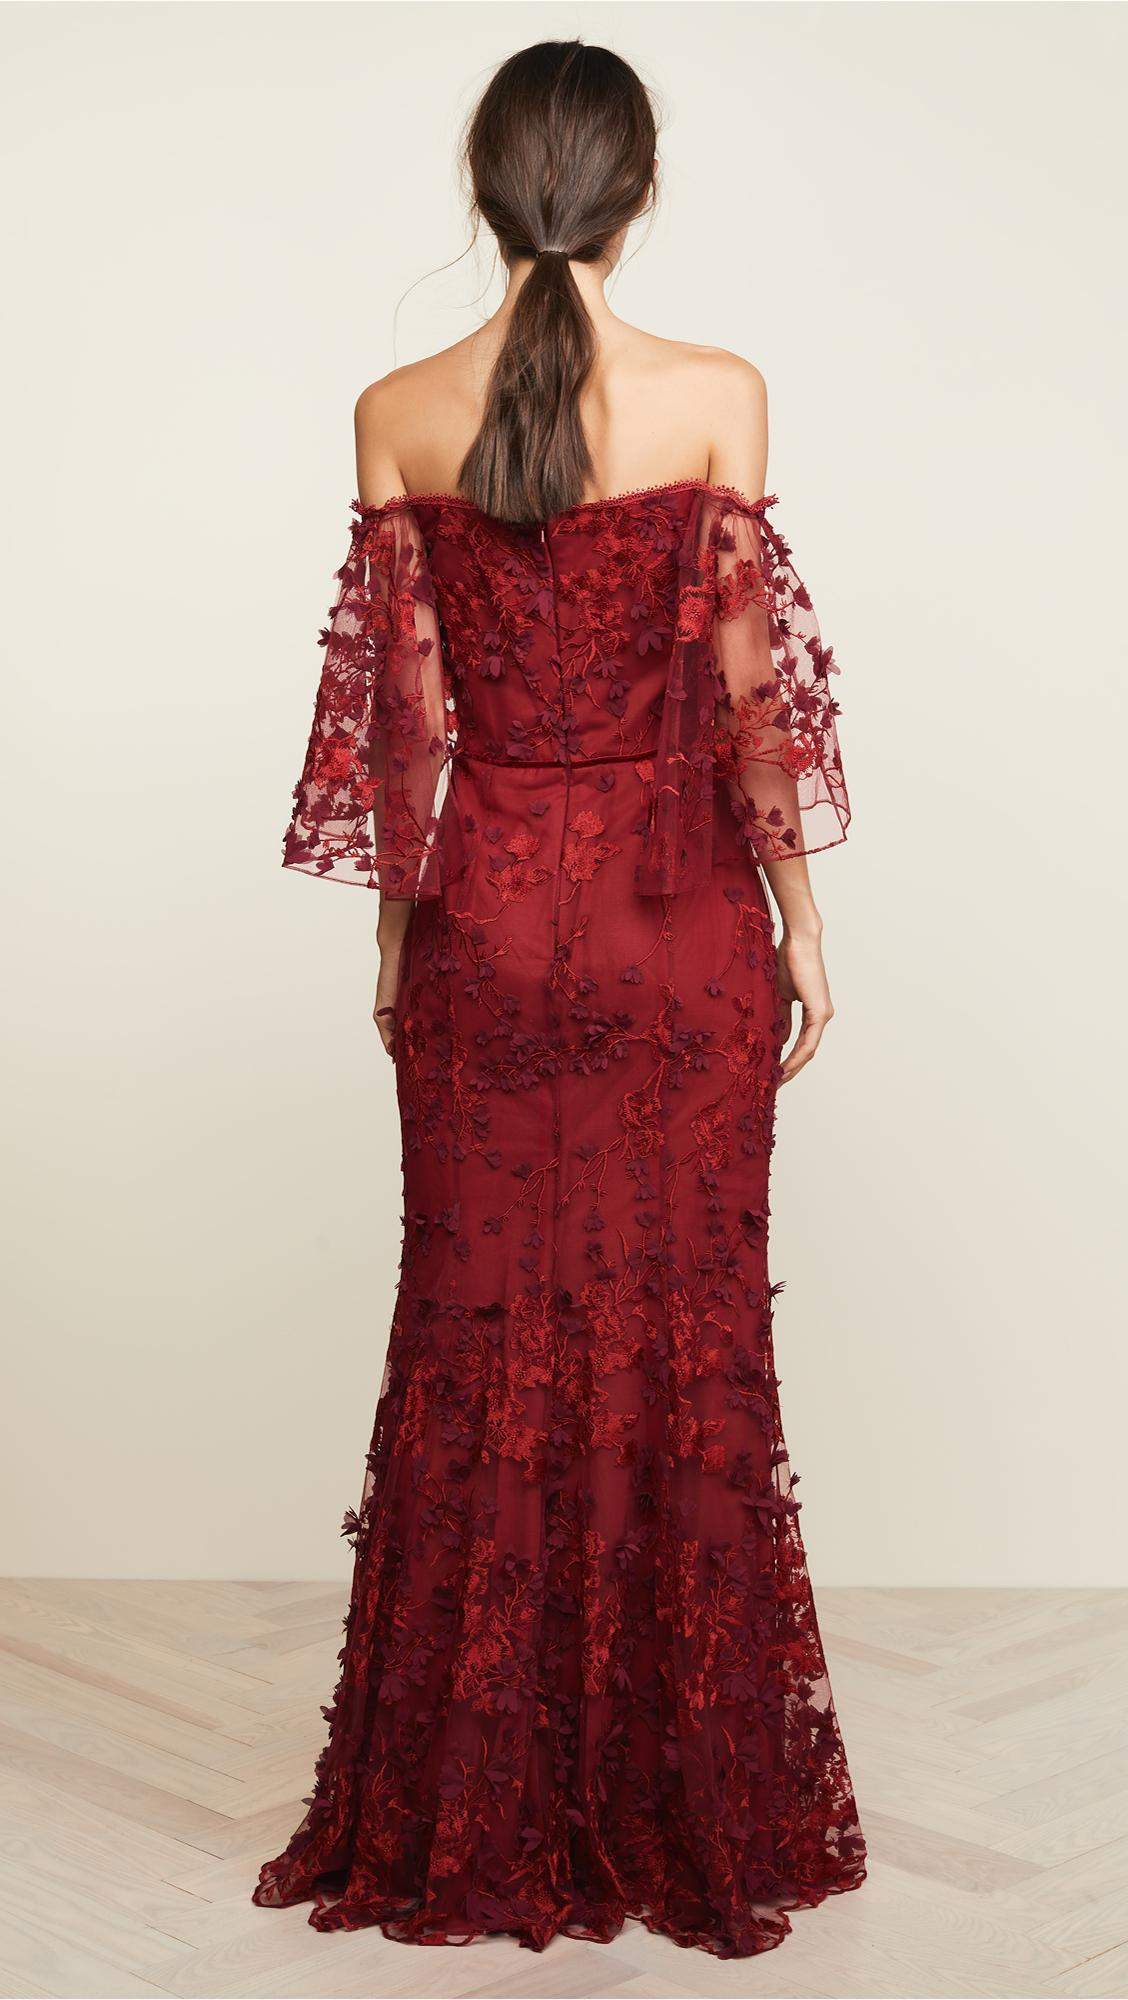 1170de3ceb99f1 Marchesa notte - Off-the-shoulder Embroidered Appliquéd Tulle Gown Red Us10  - Lyst. View fullscreen